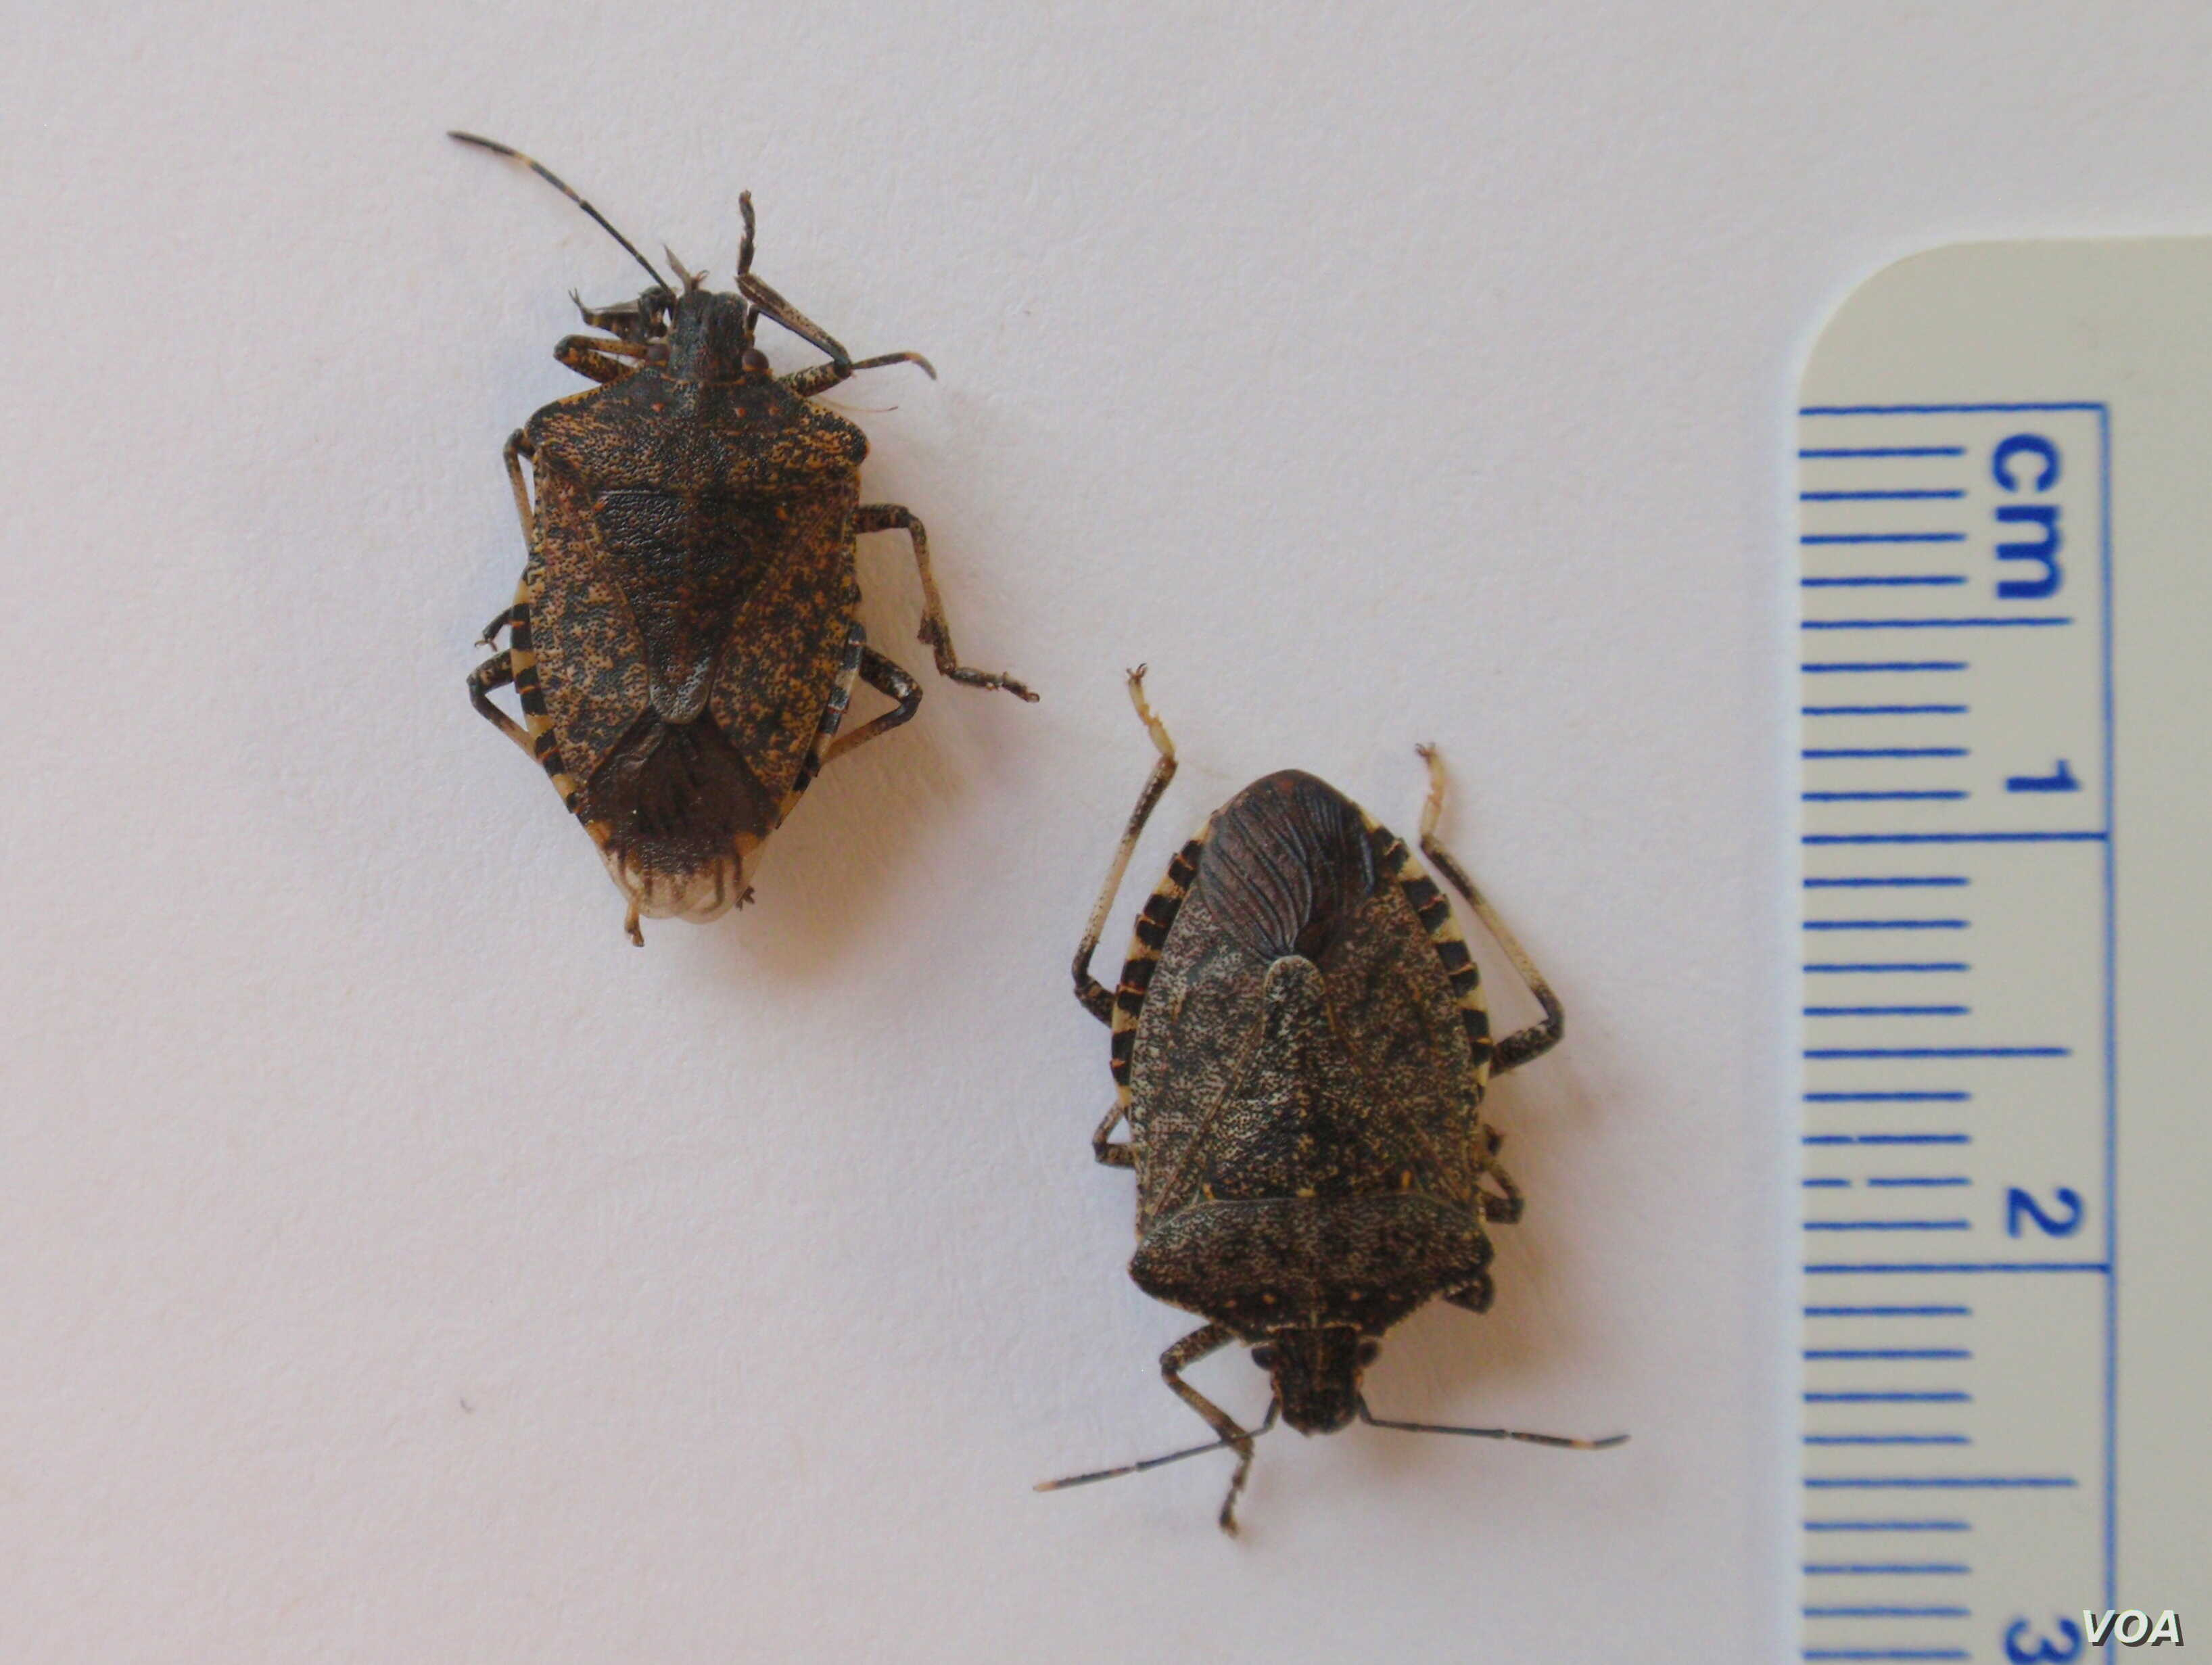 The brown marmorated stink bug is 1-2 centimeters in length (VOA/T. Banse)